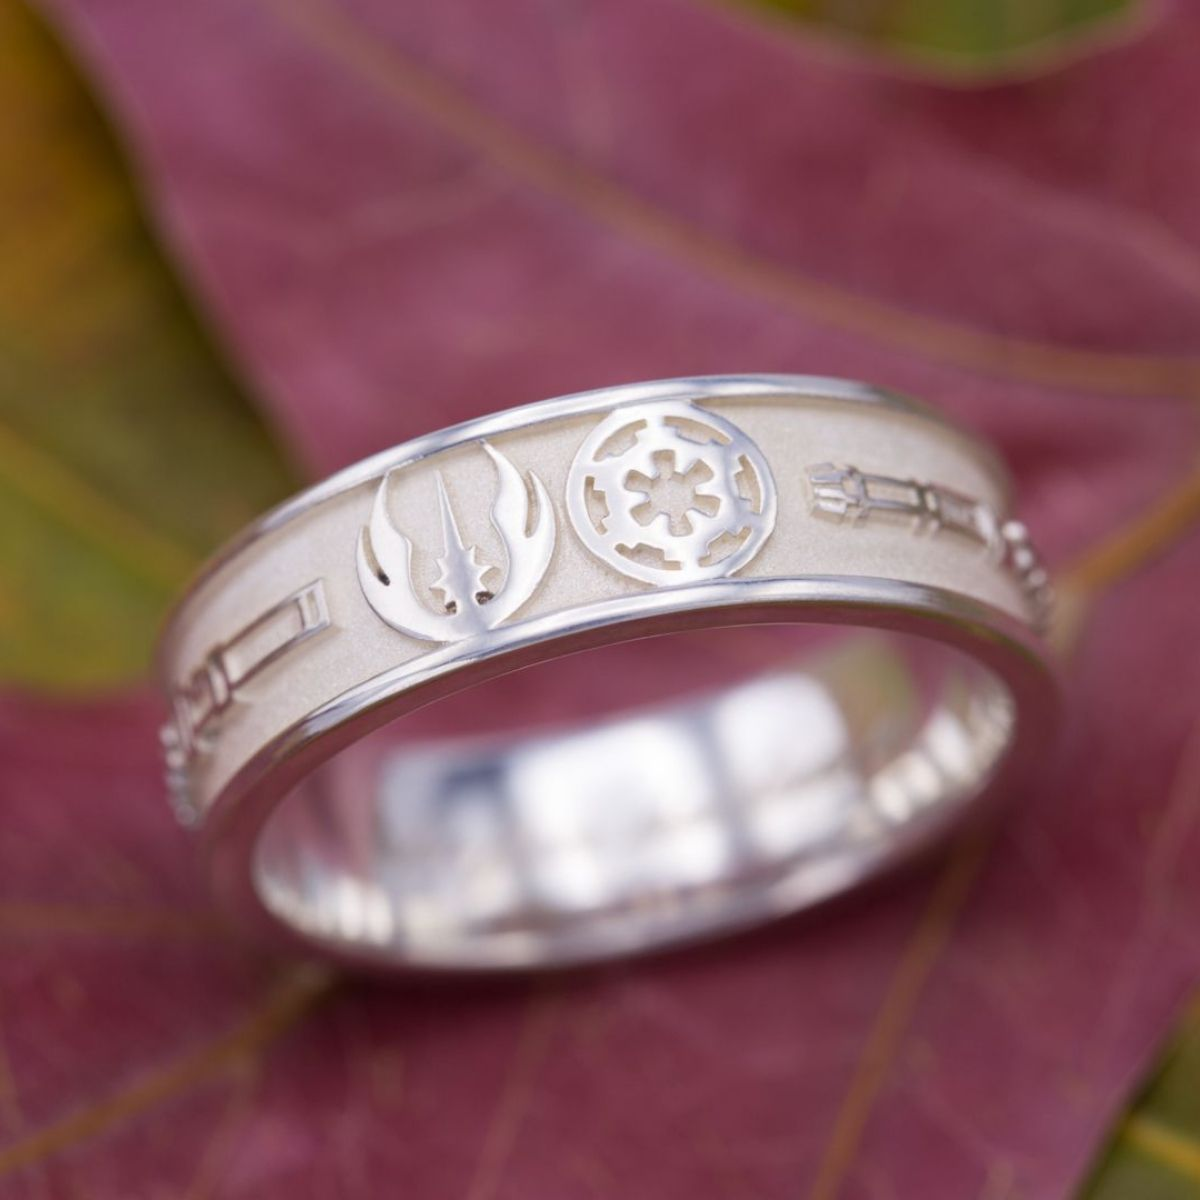 rings a would nerdy superhero unique bands with detail custommade wedding his sketched band traces engraving nerd blend she geeky rope the batman com familiar engagement celtic logo that concept for intricate